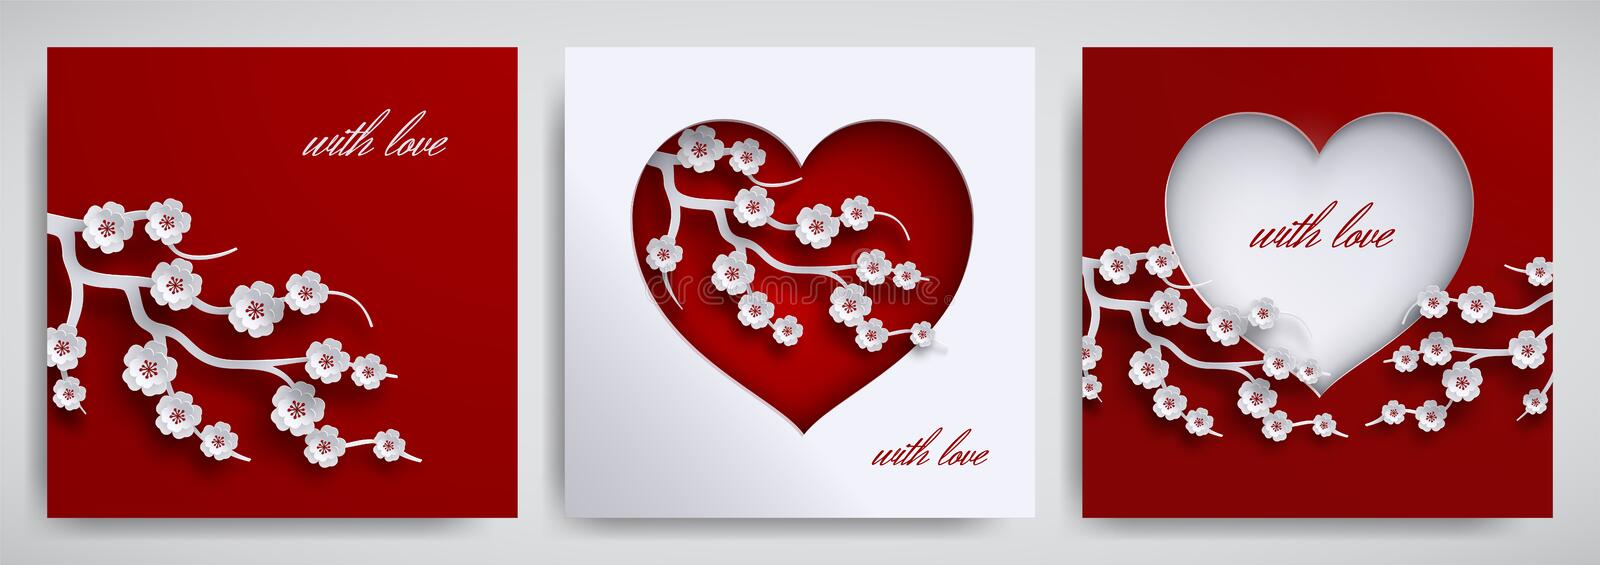 Valentine`s day, mother`s day design set. Greeting card, poster, banner collection. Heart with cherry flowers branch on red, white stock illustration